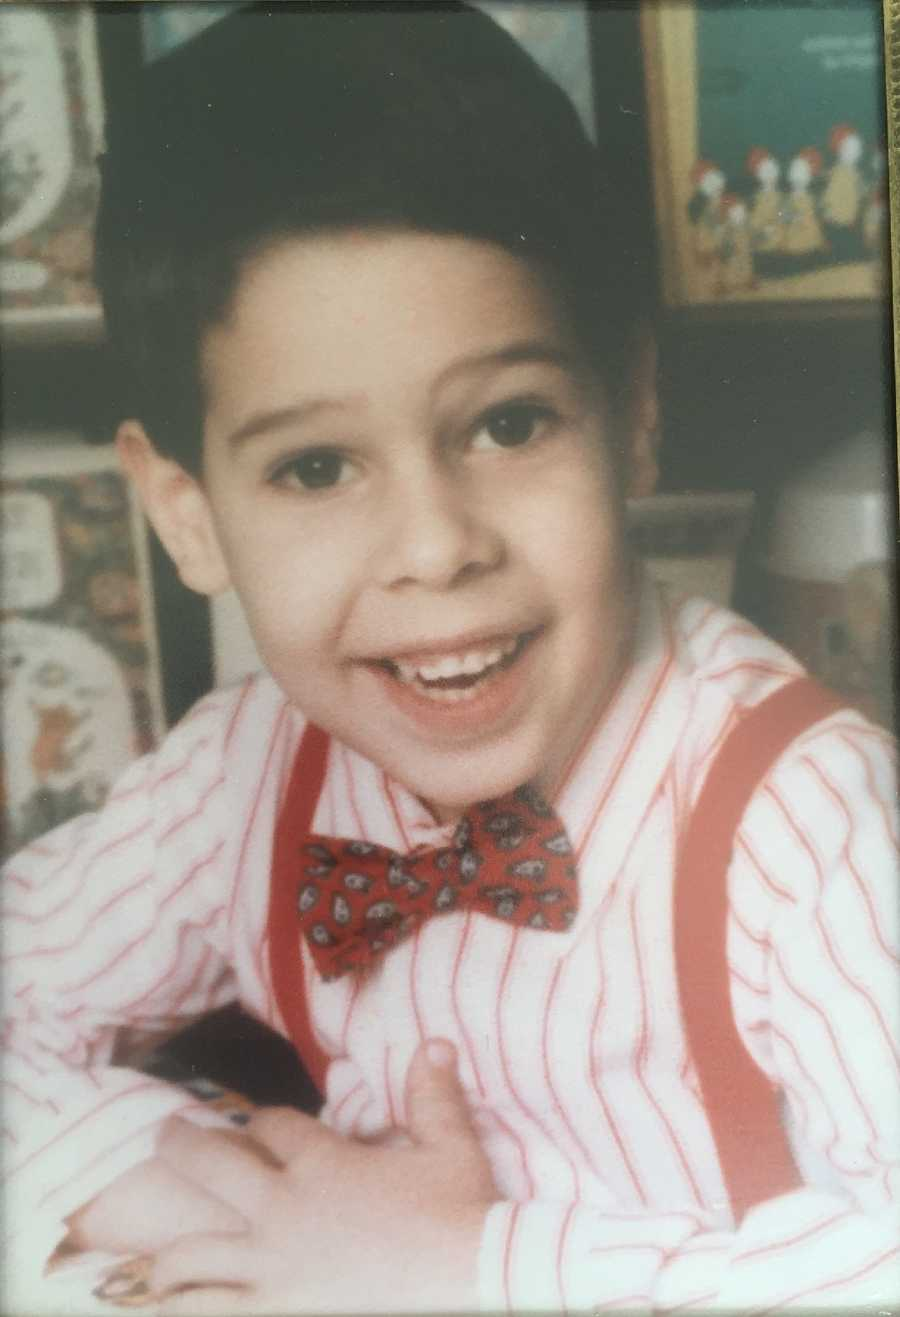 Try guessing who this dapper boy is ...